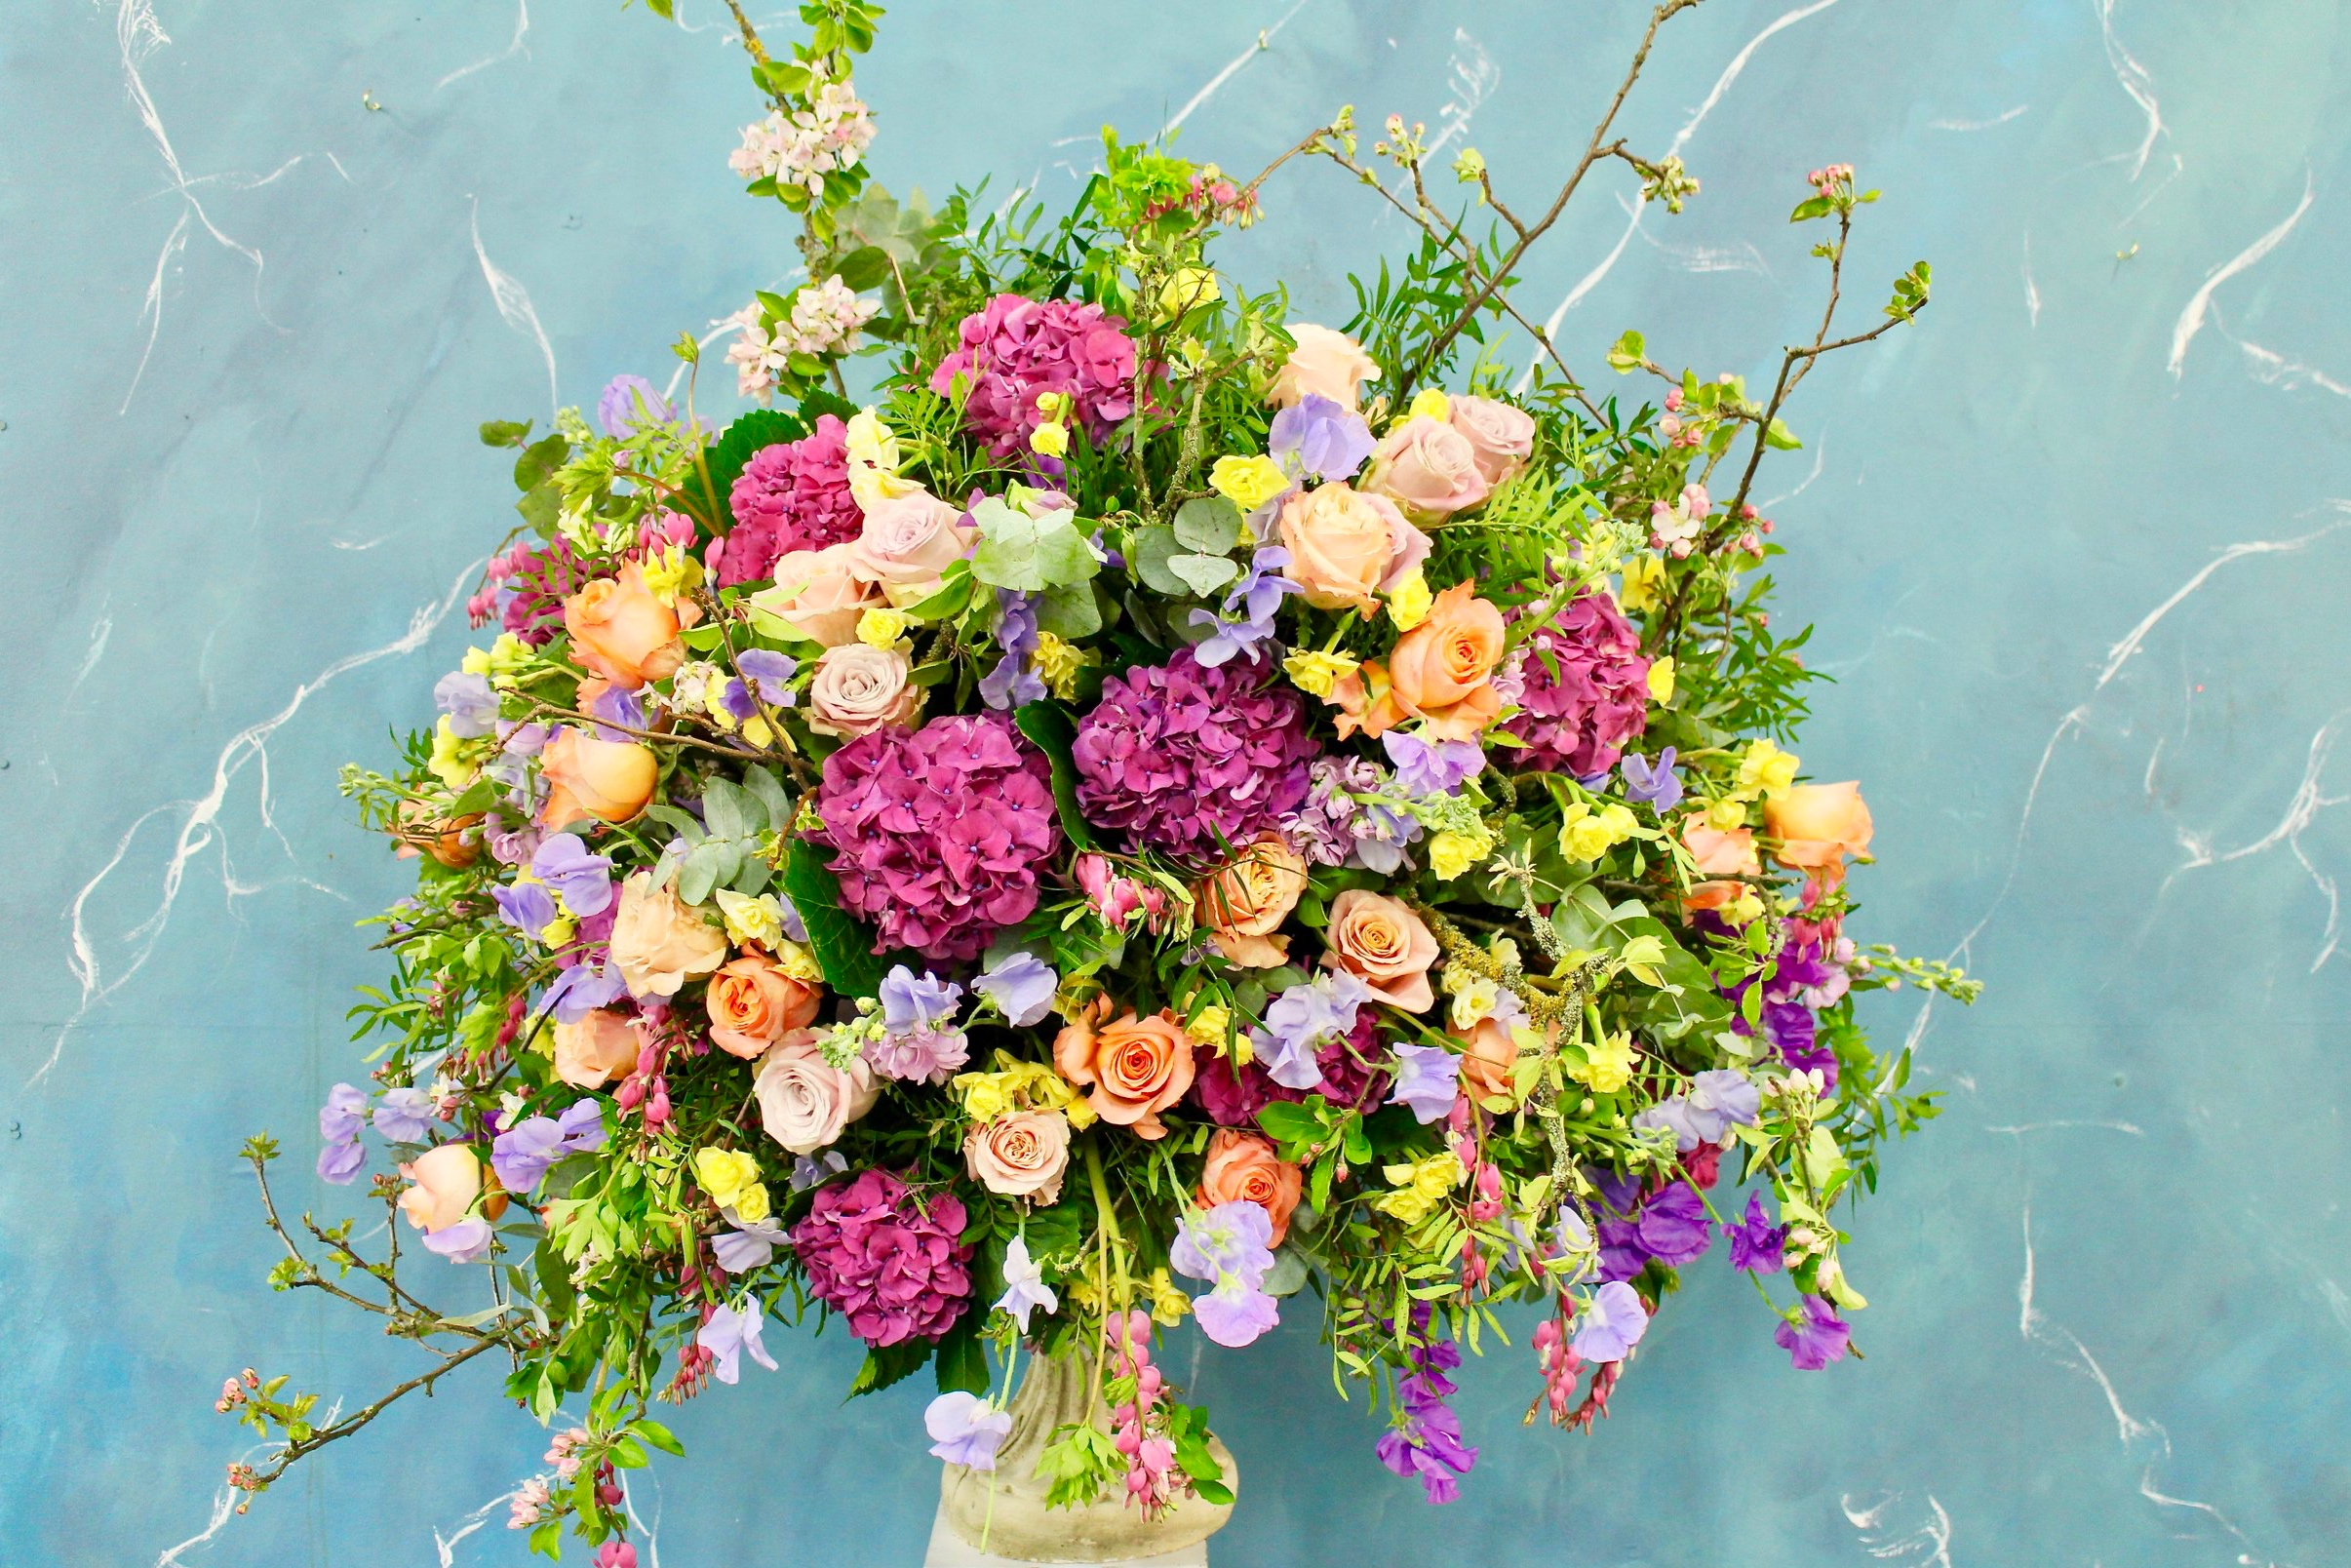 A spring urn filled with hydrangea, faith roses, apple blossom, sweet peas, daffodils, and an abundance of textured foliage